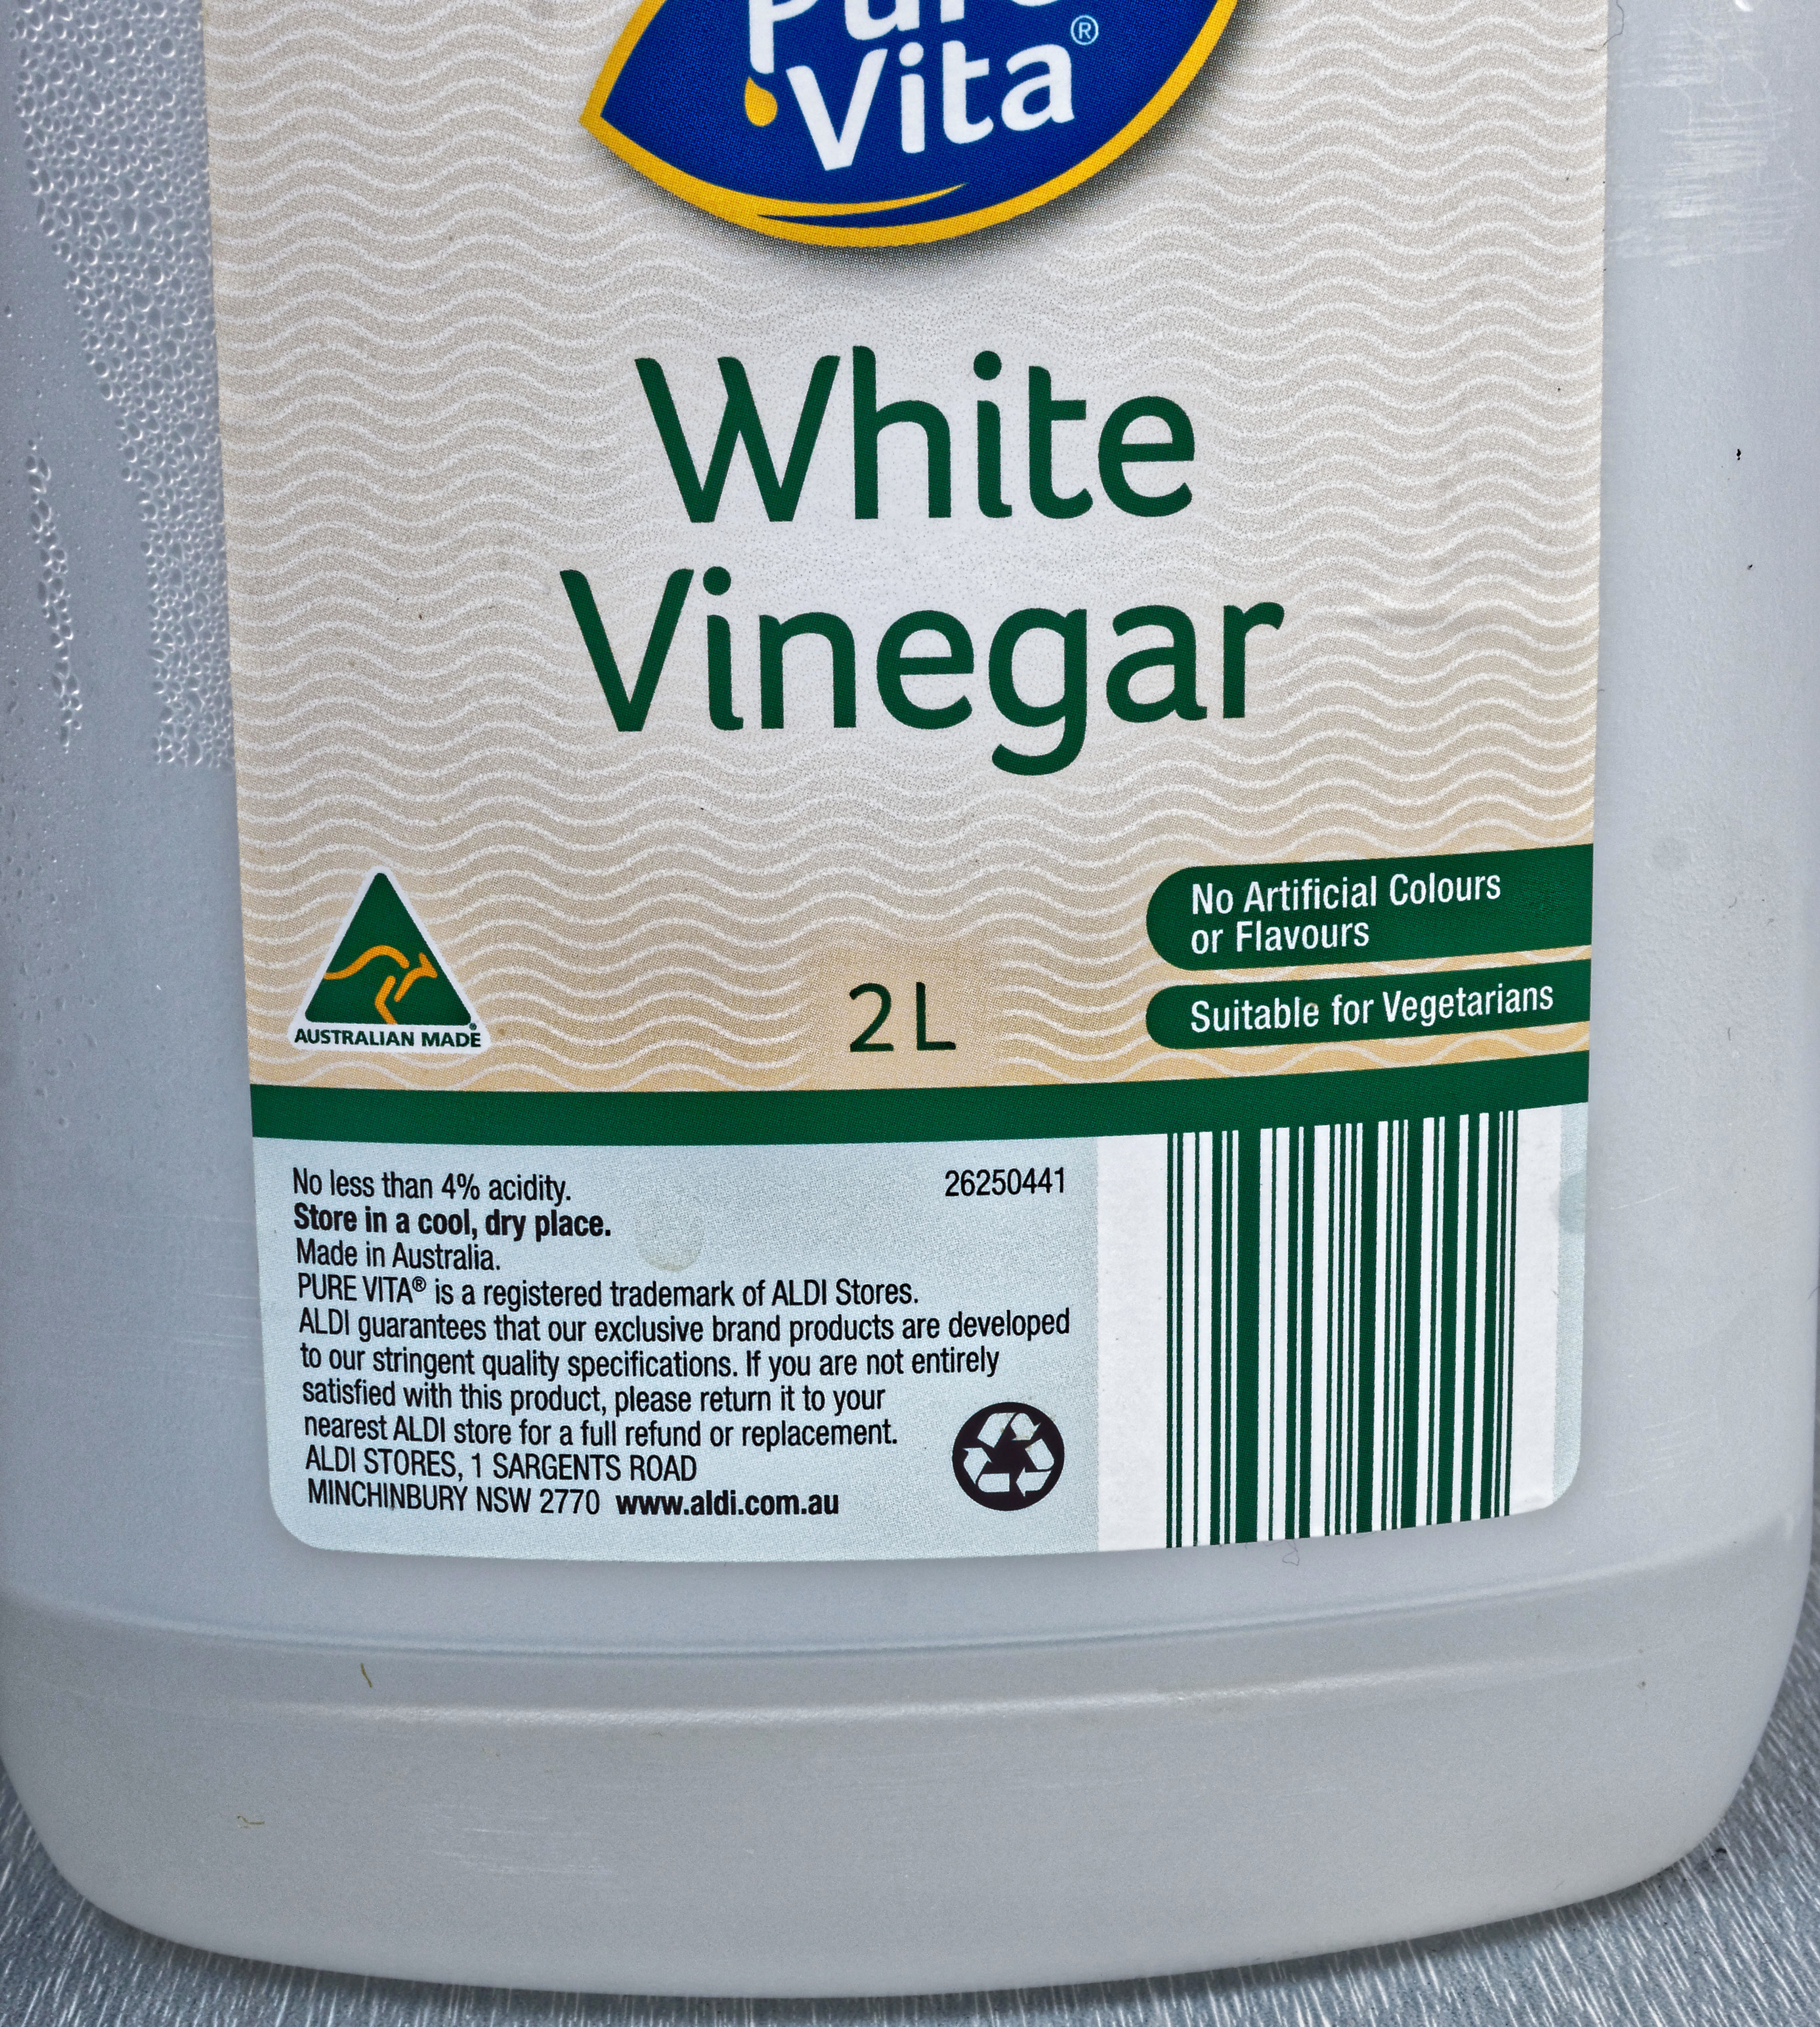 This should be Vinegar-1.jpeg.  Is it missing?